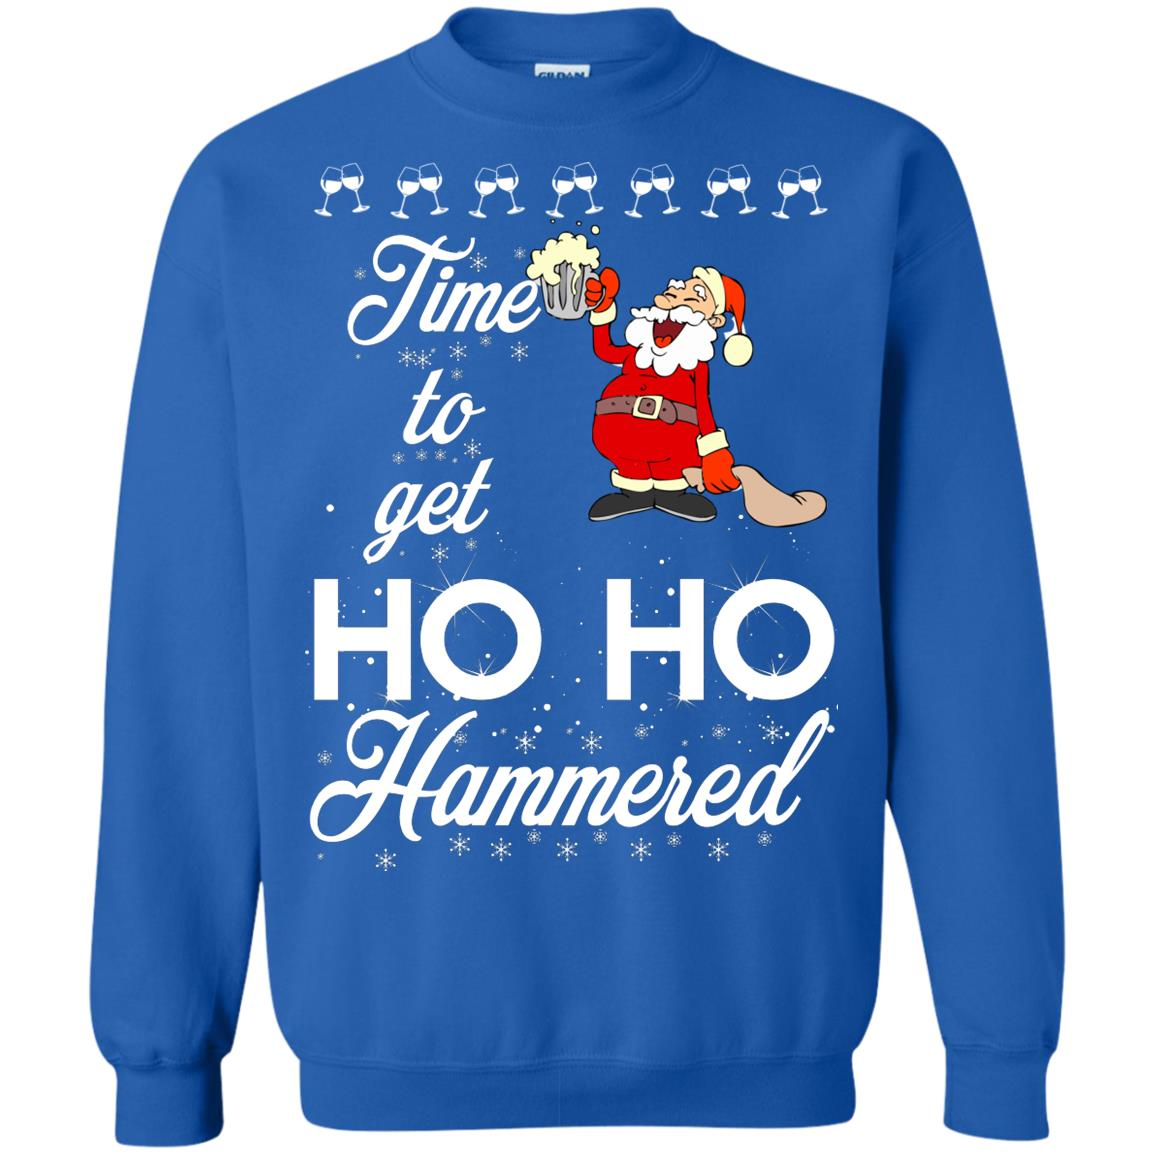 image 1658 - Time To Get Ho Ho Hammered Christmas Sweater, Shirt